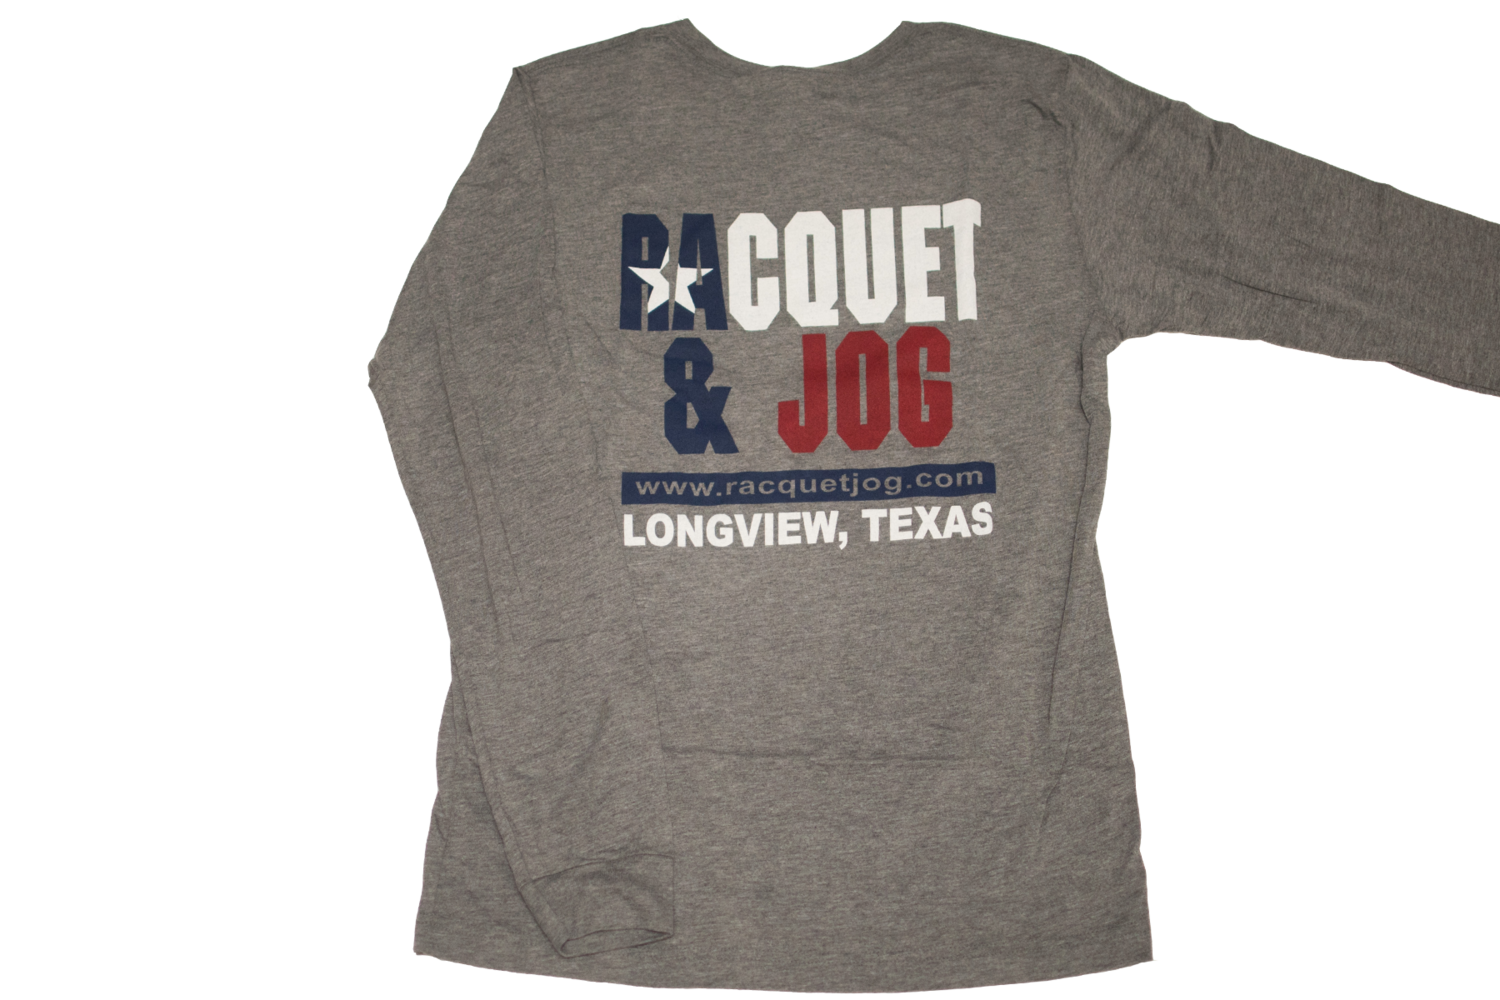 Racquet & Jog Old School Print TX Flag Long Sleeve Tee